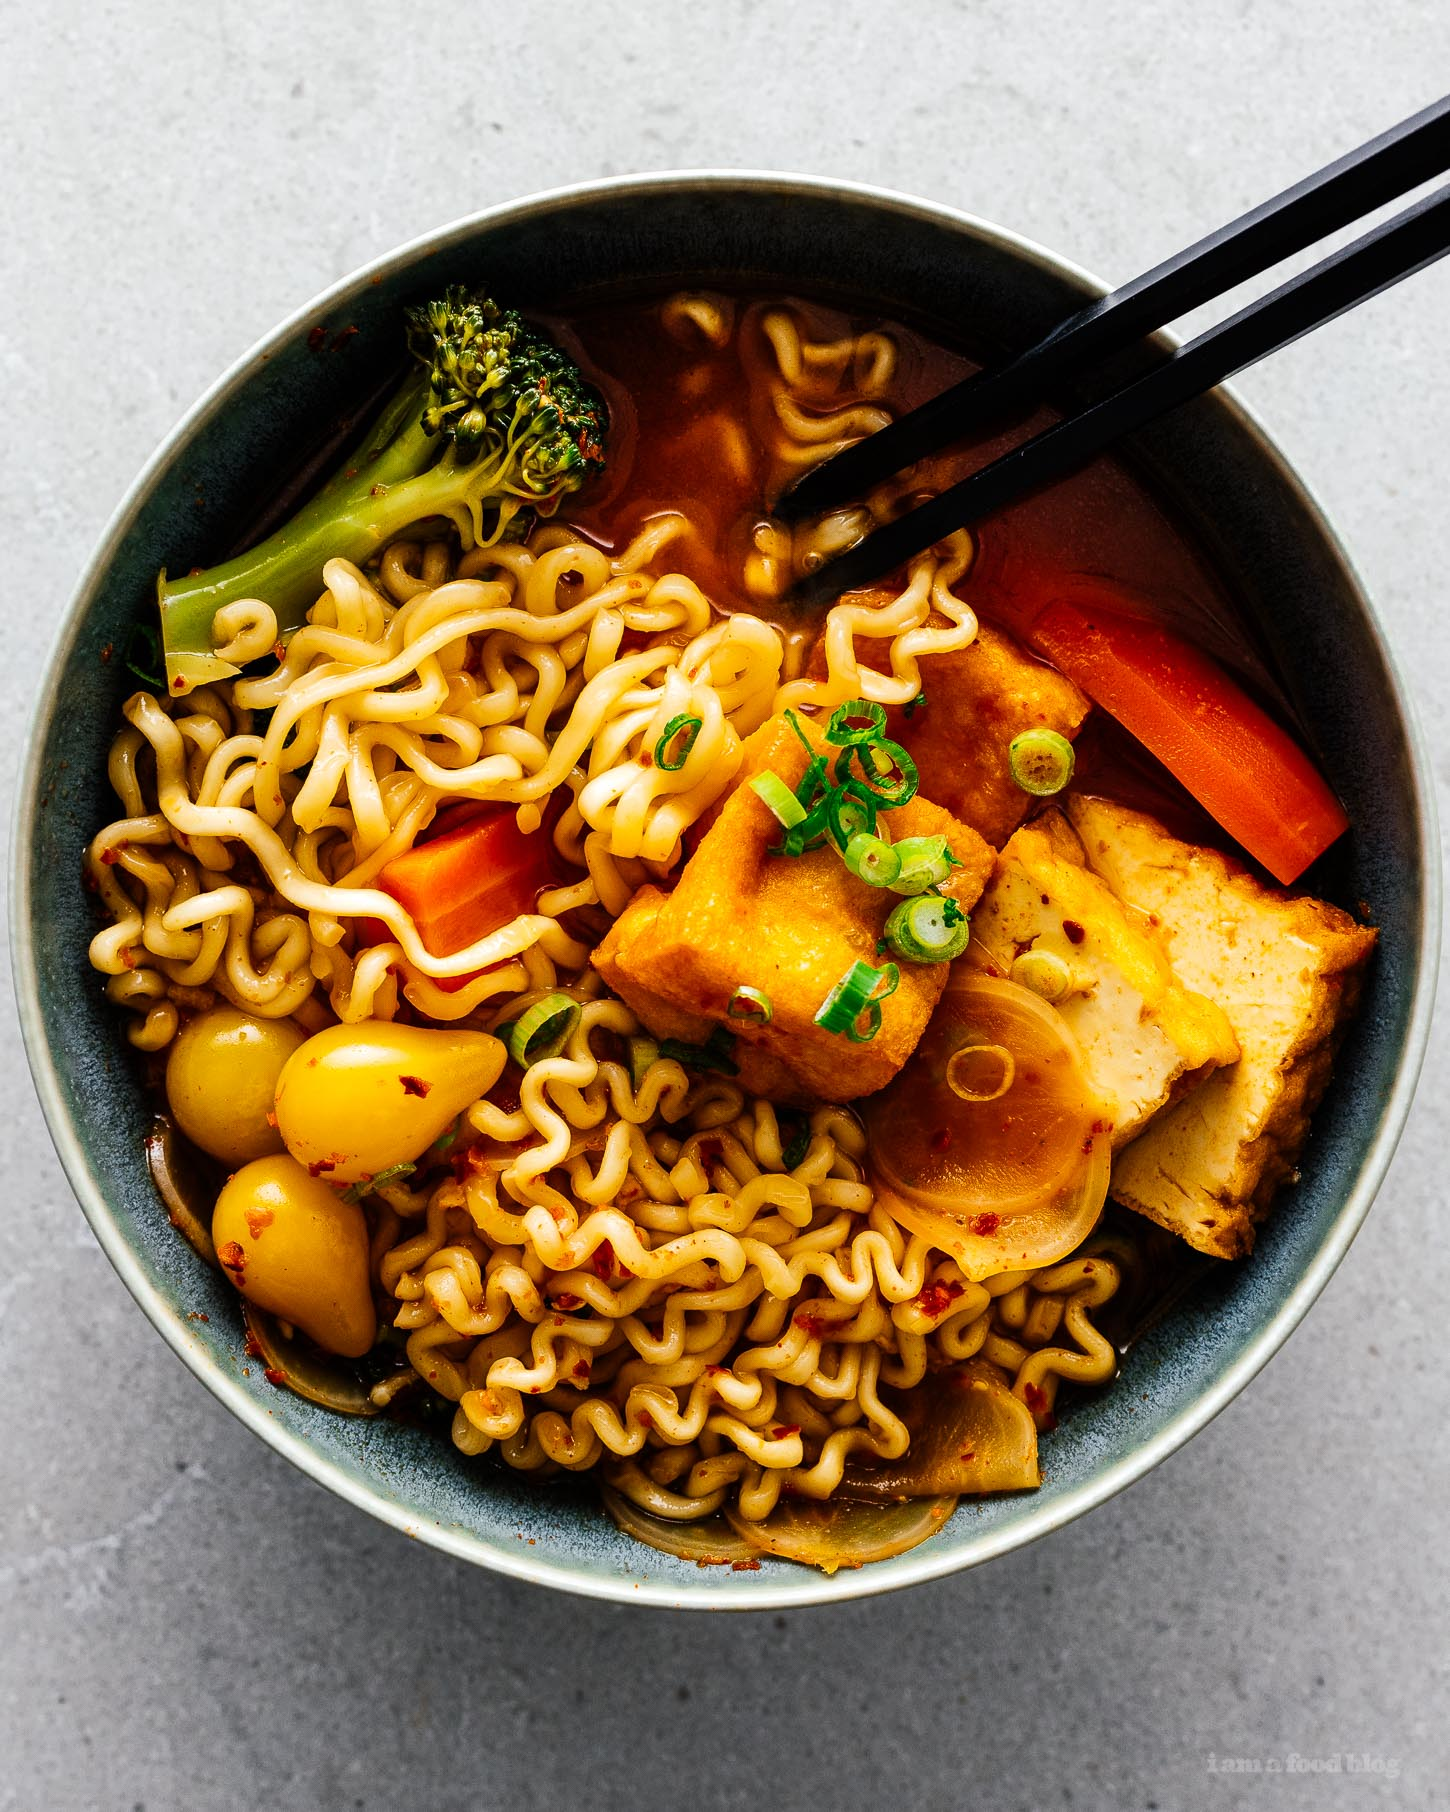 Spicy Korean Ramen Recipe with Tofu and Vegetables | www.iamafoodblog.com